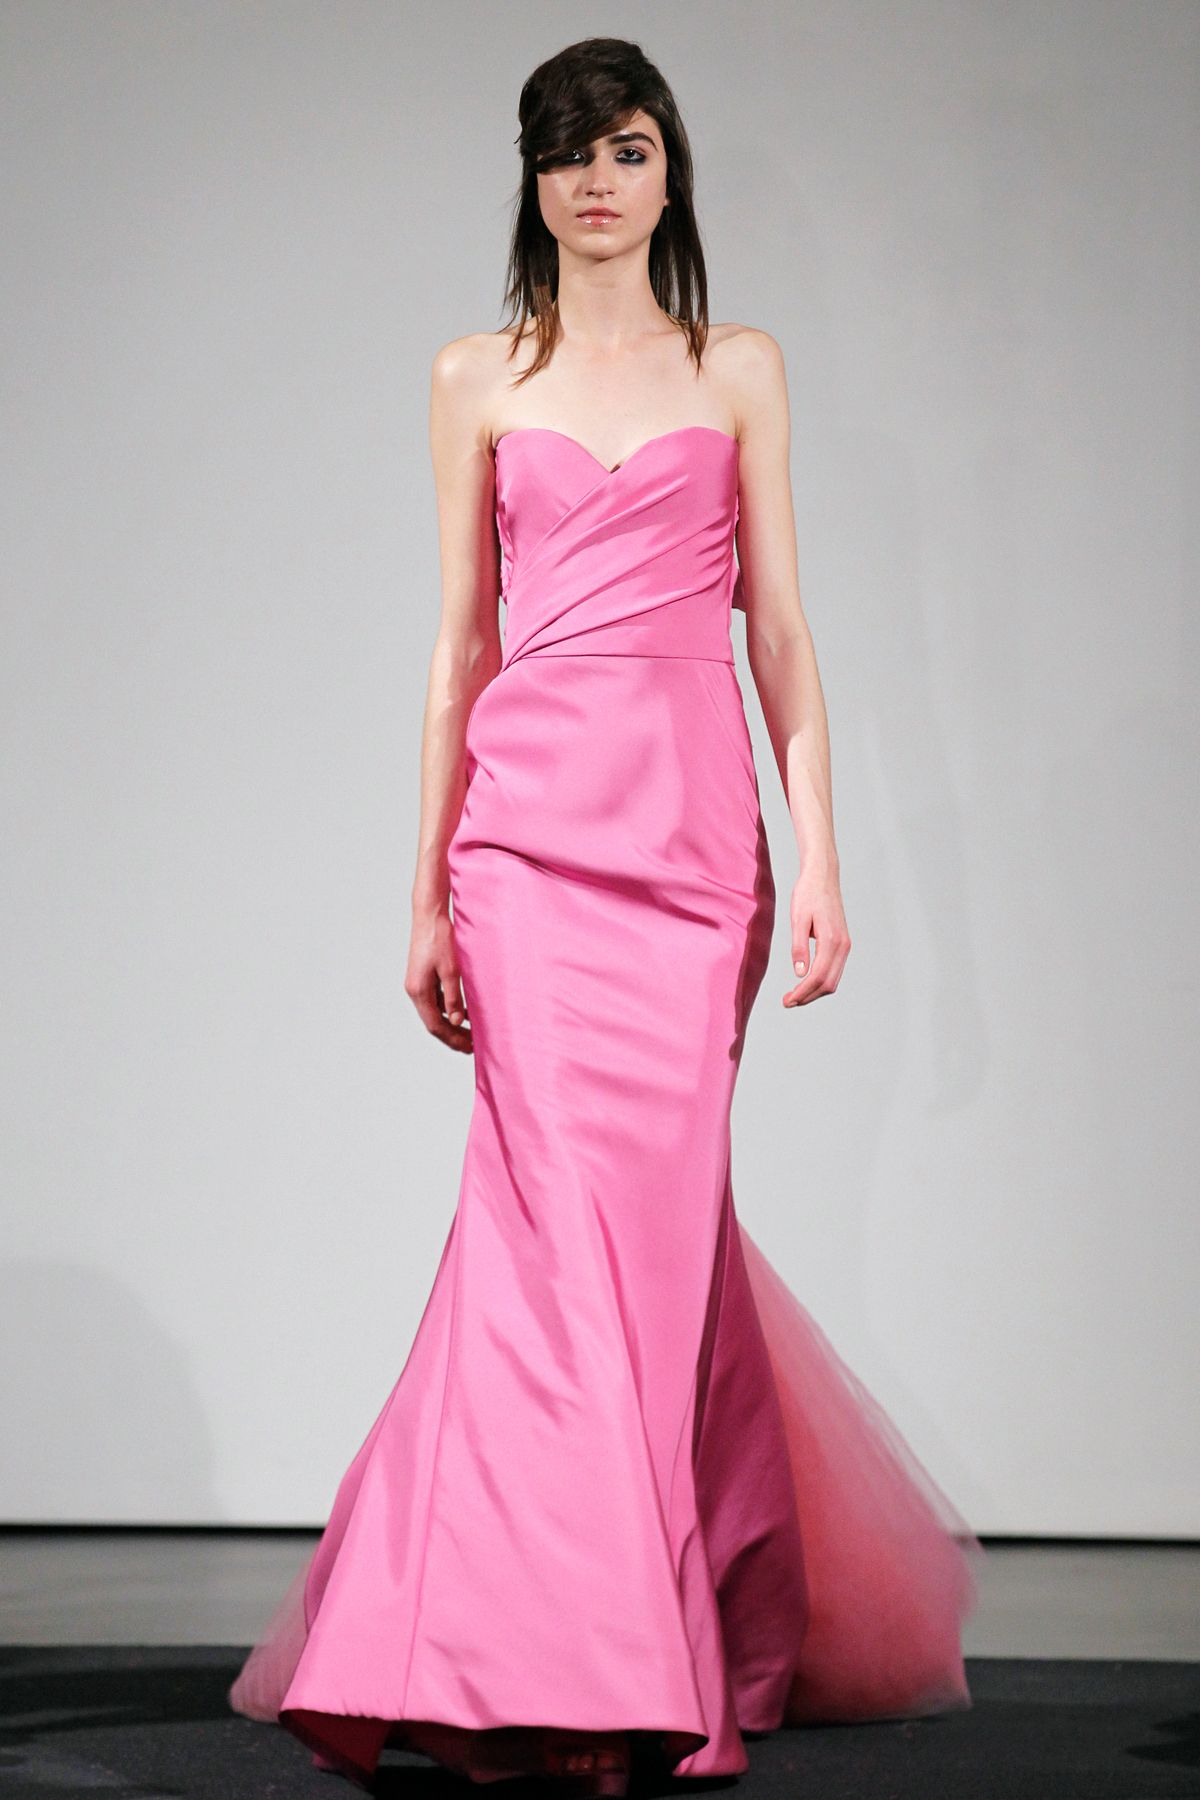 Red wedding dresses vera wang  Vera Wangus Latest Collection Proves Sheus So Over White Wedding